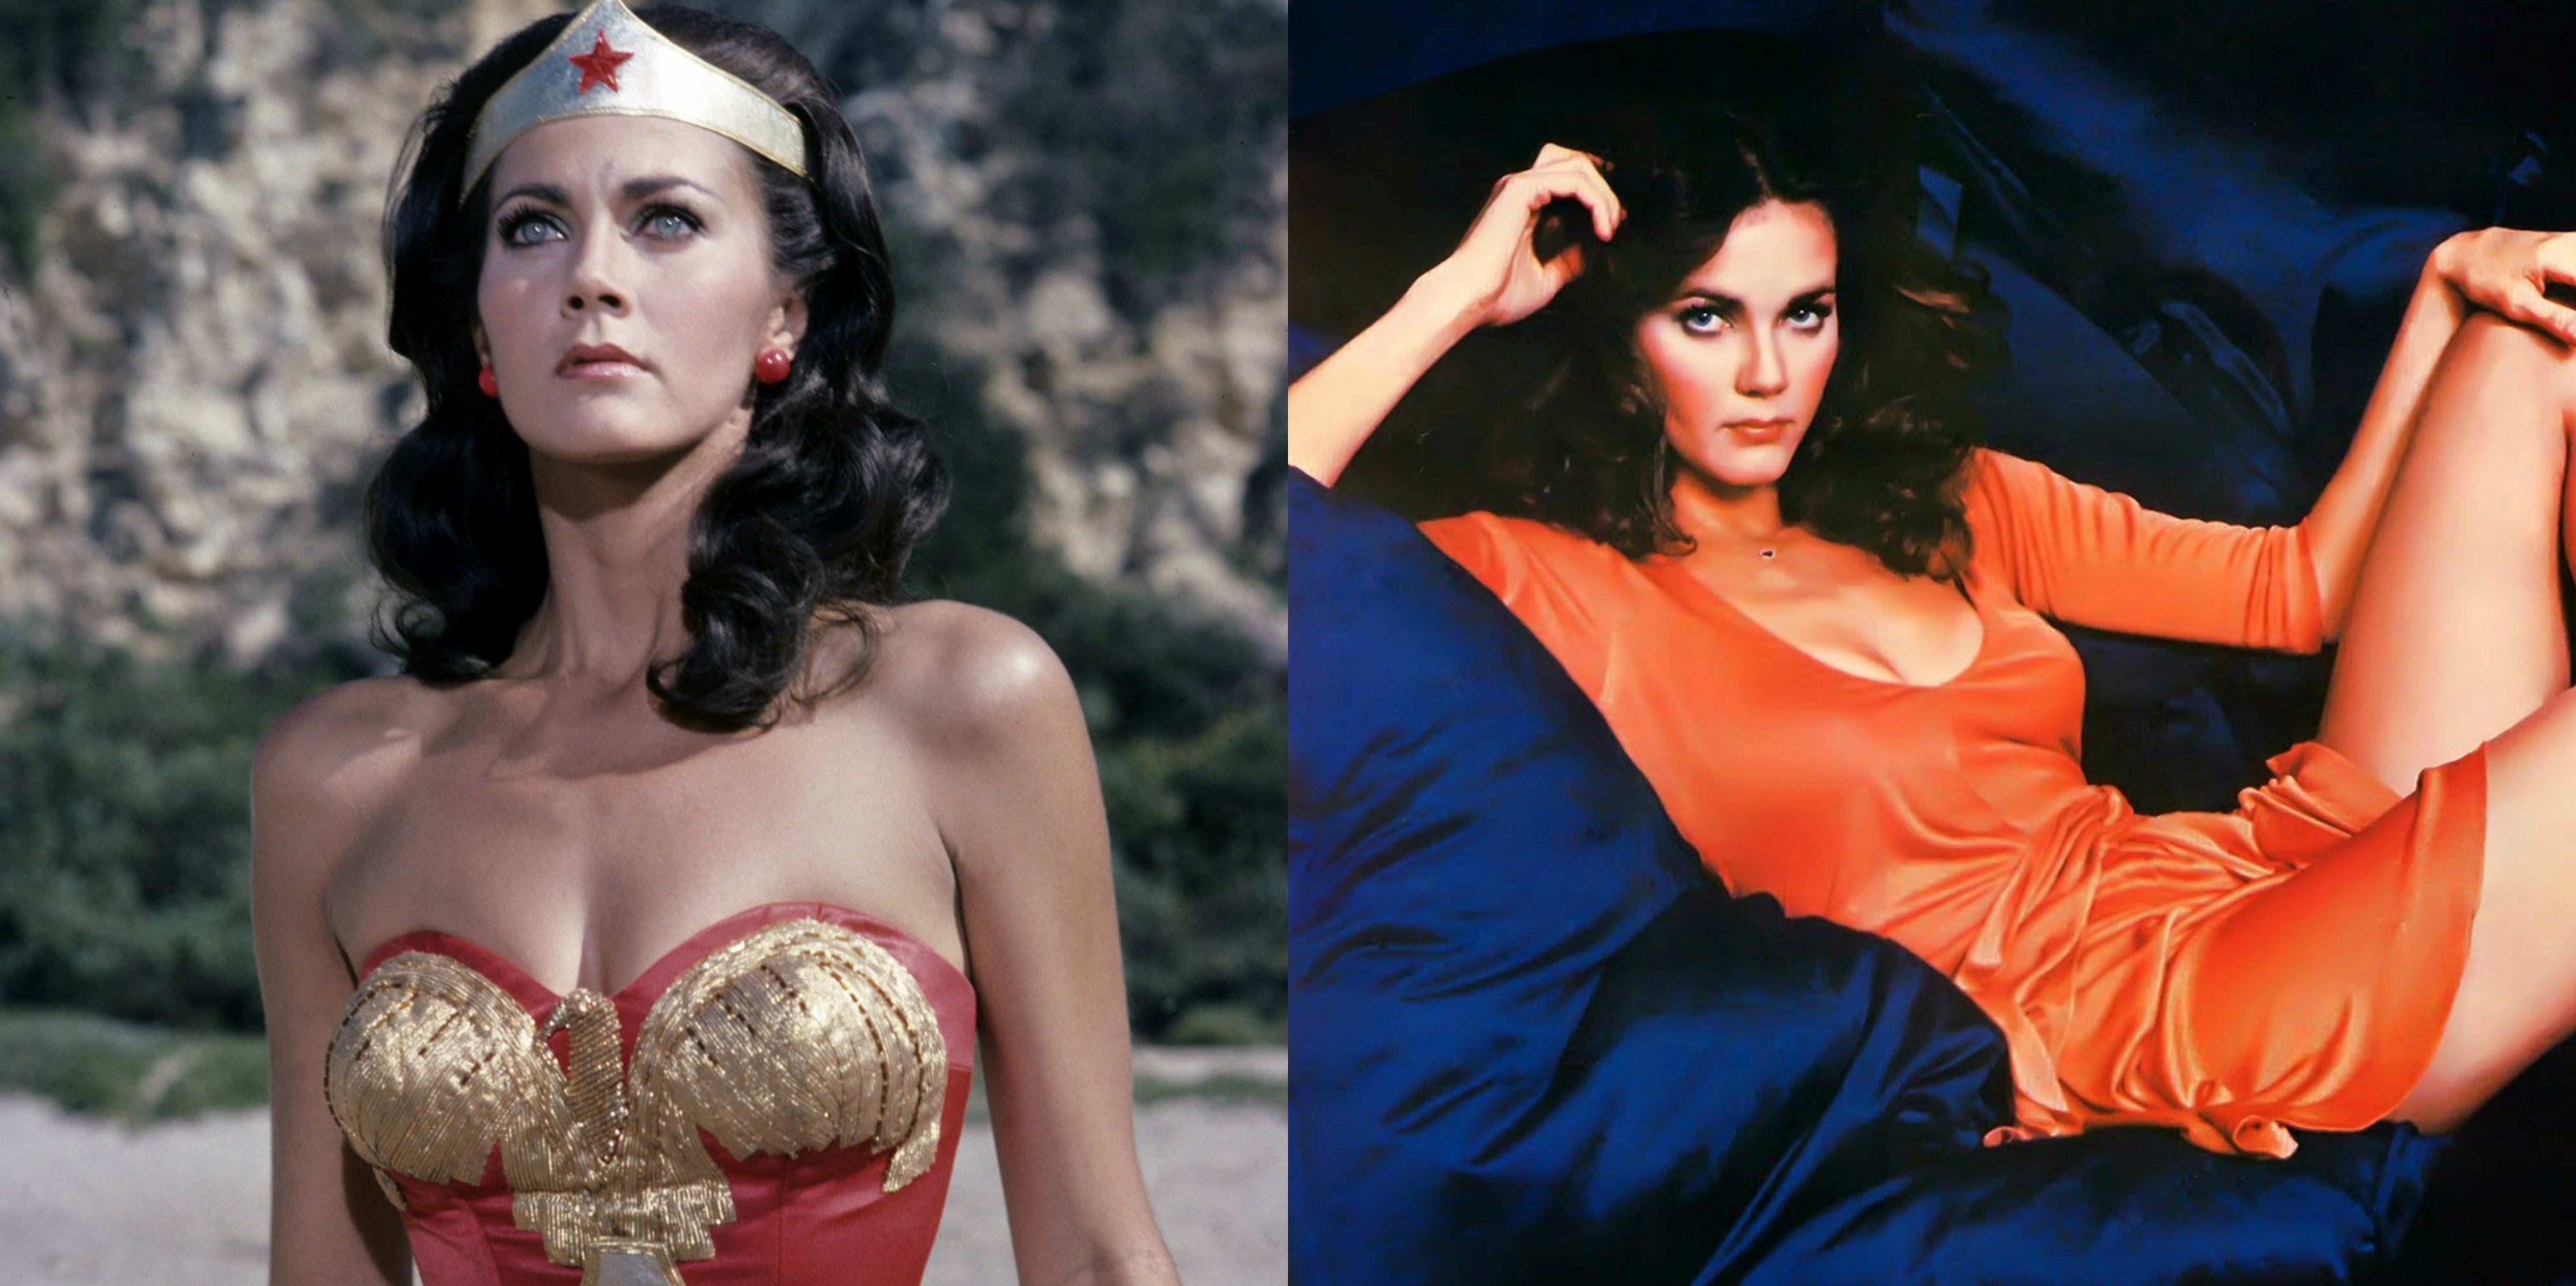 Wonder woman lynda carter topless